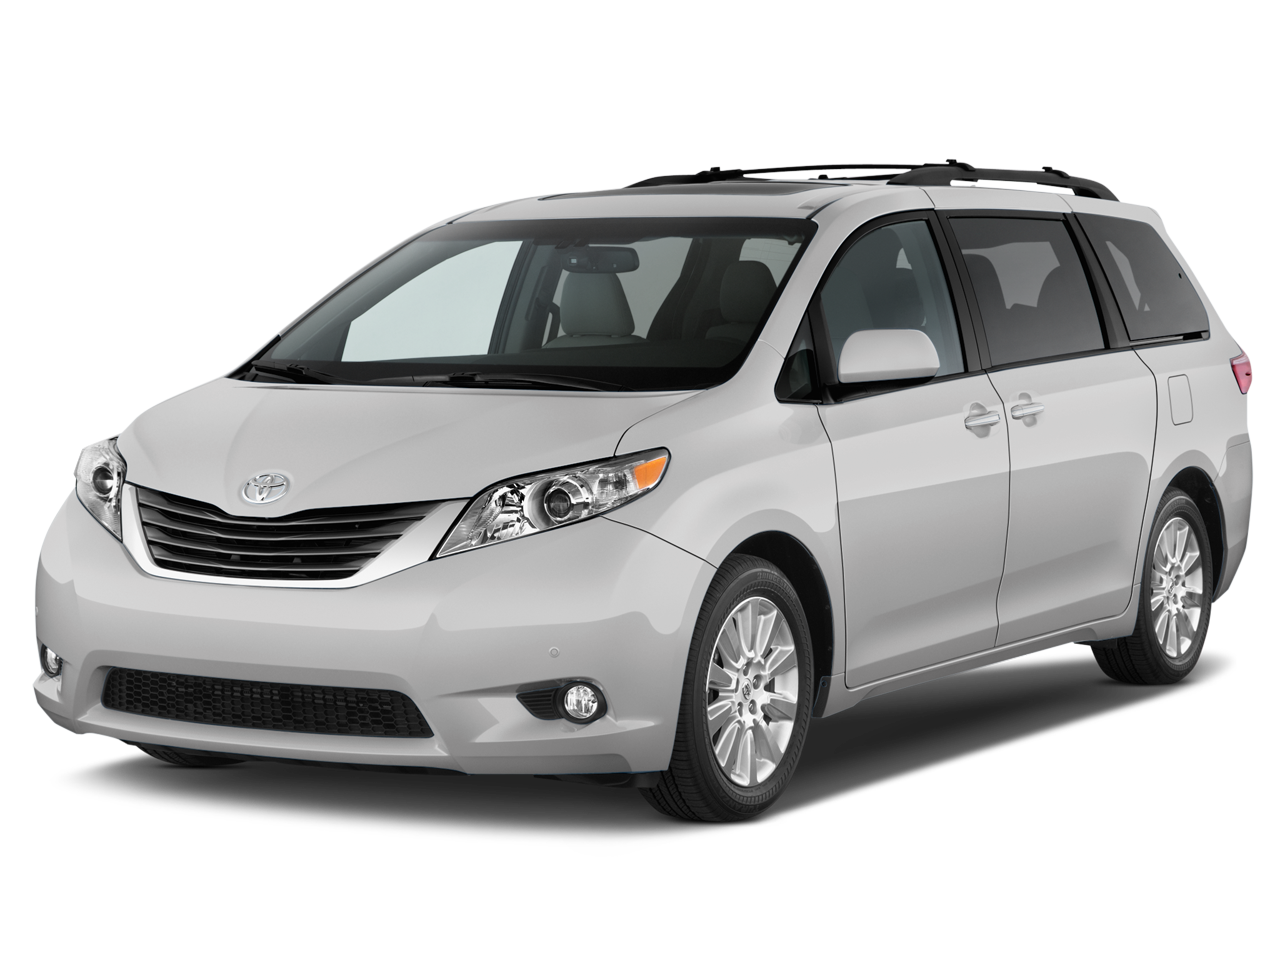 2017 toyota sienna for sale near greenwich ct toyota of. Black Bedroom Furniture Sets. Home Design Ideas